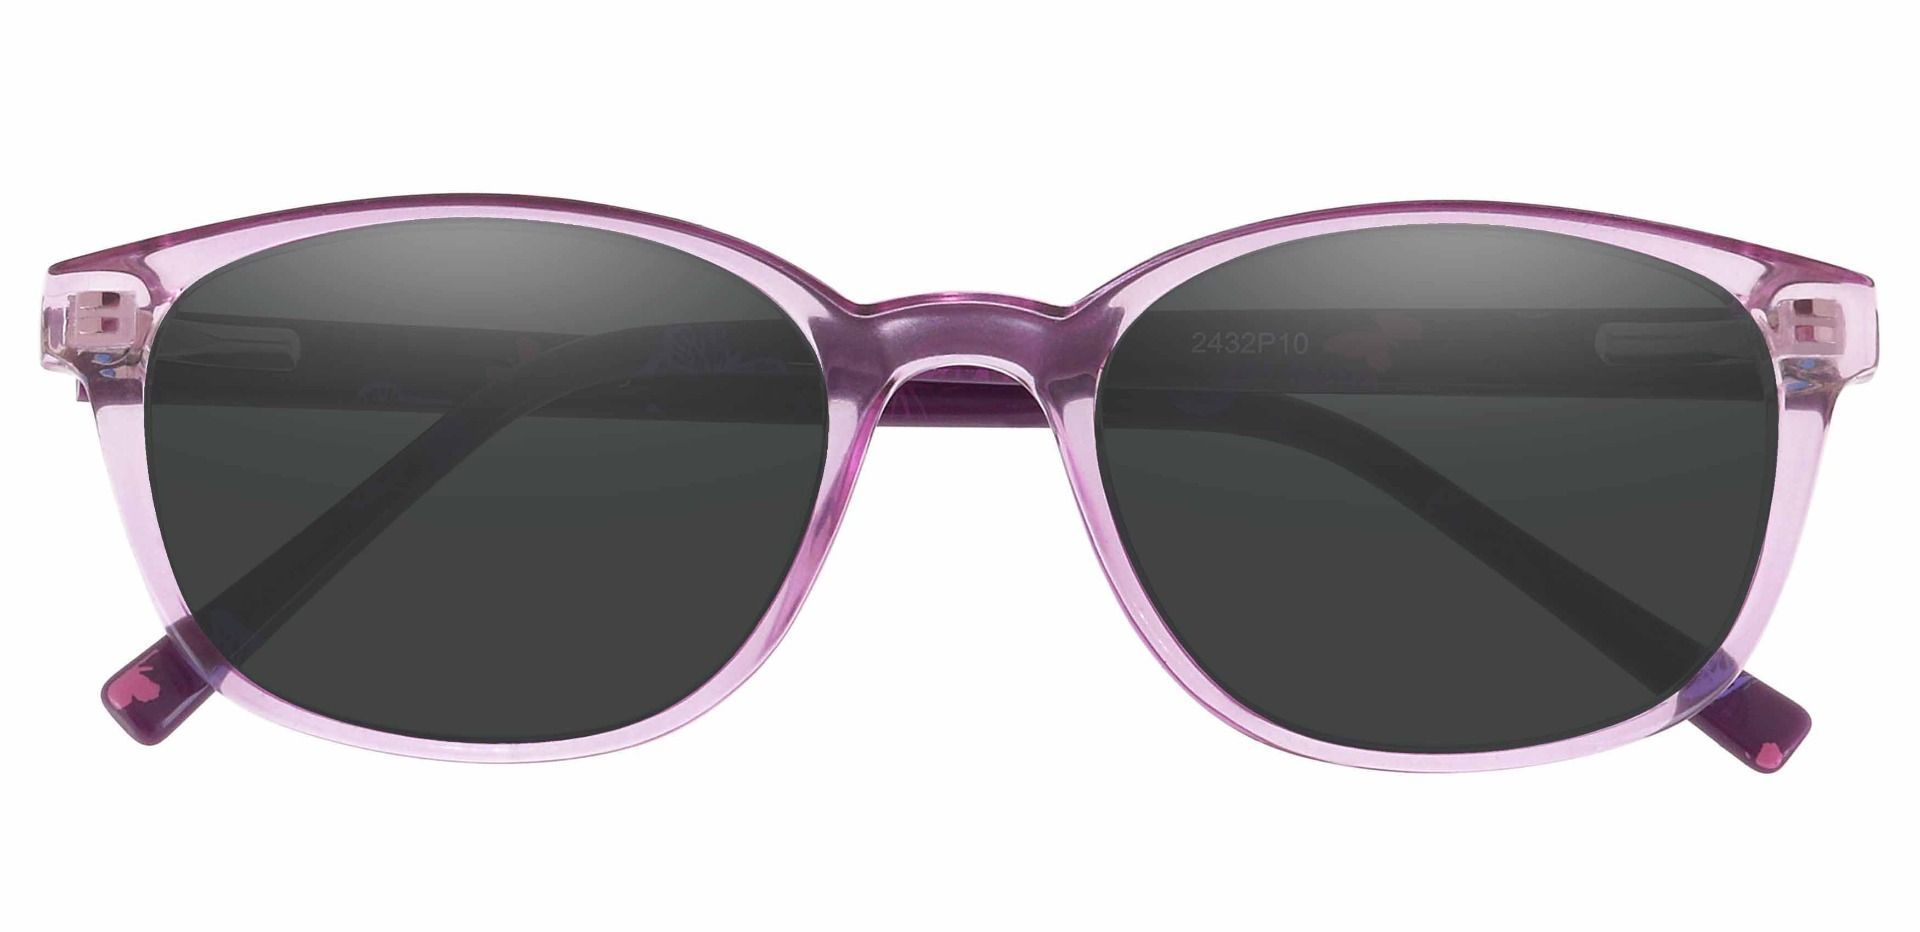 Branson Rectangle Prescription Sunglasses - Purple Frame With Gray Lenses